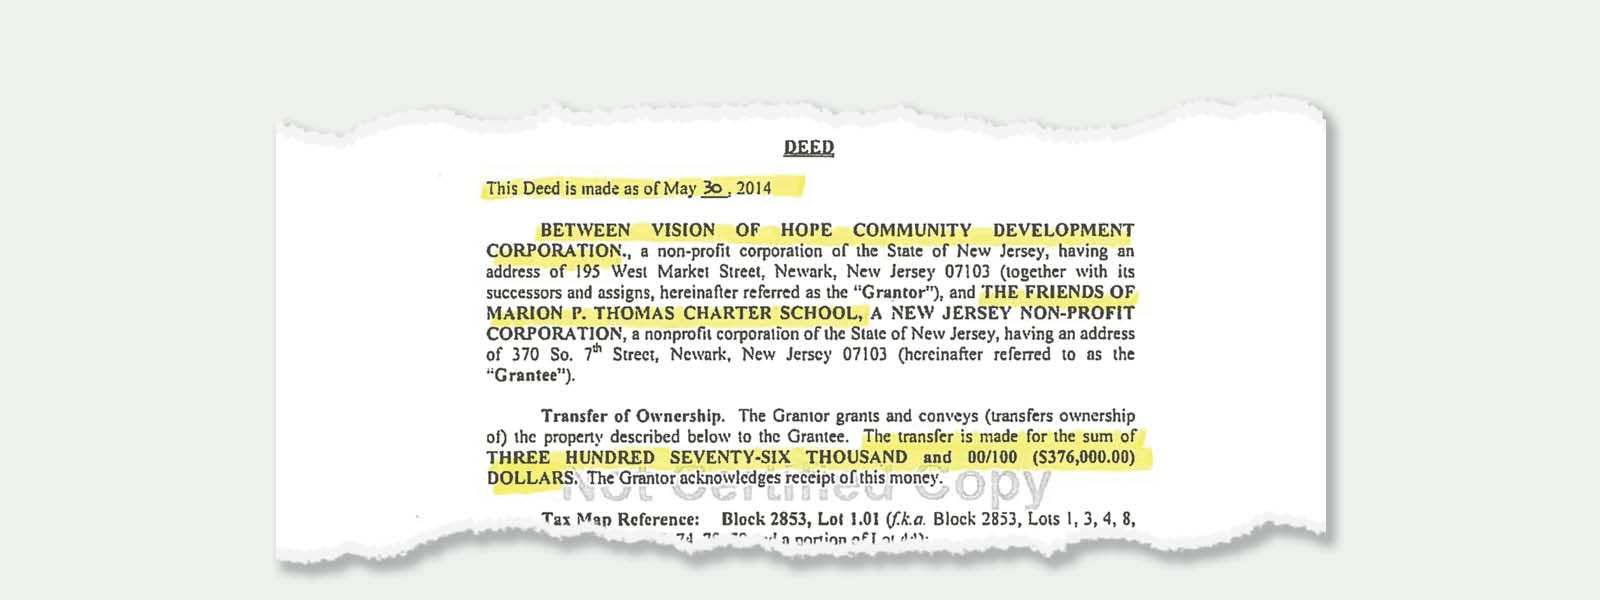 The Friends of Marion P. Thomas Charter School purchased property for  $376,000  on May 30, 2014. The same day, they sold it to a subsidiary for $2.17 million.